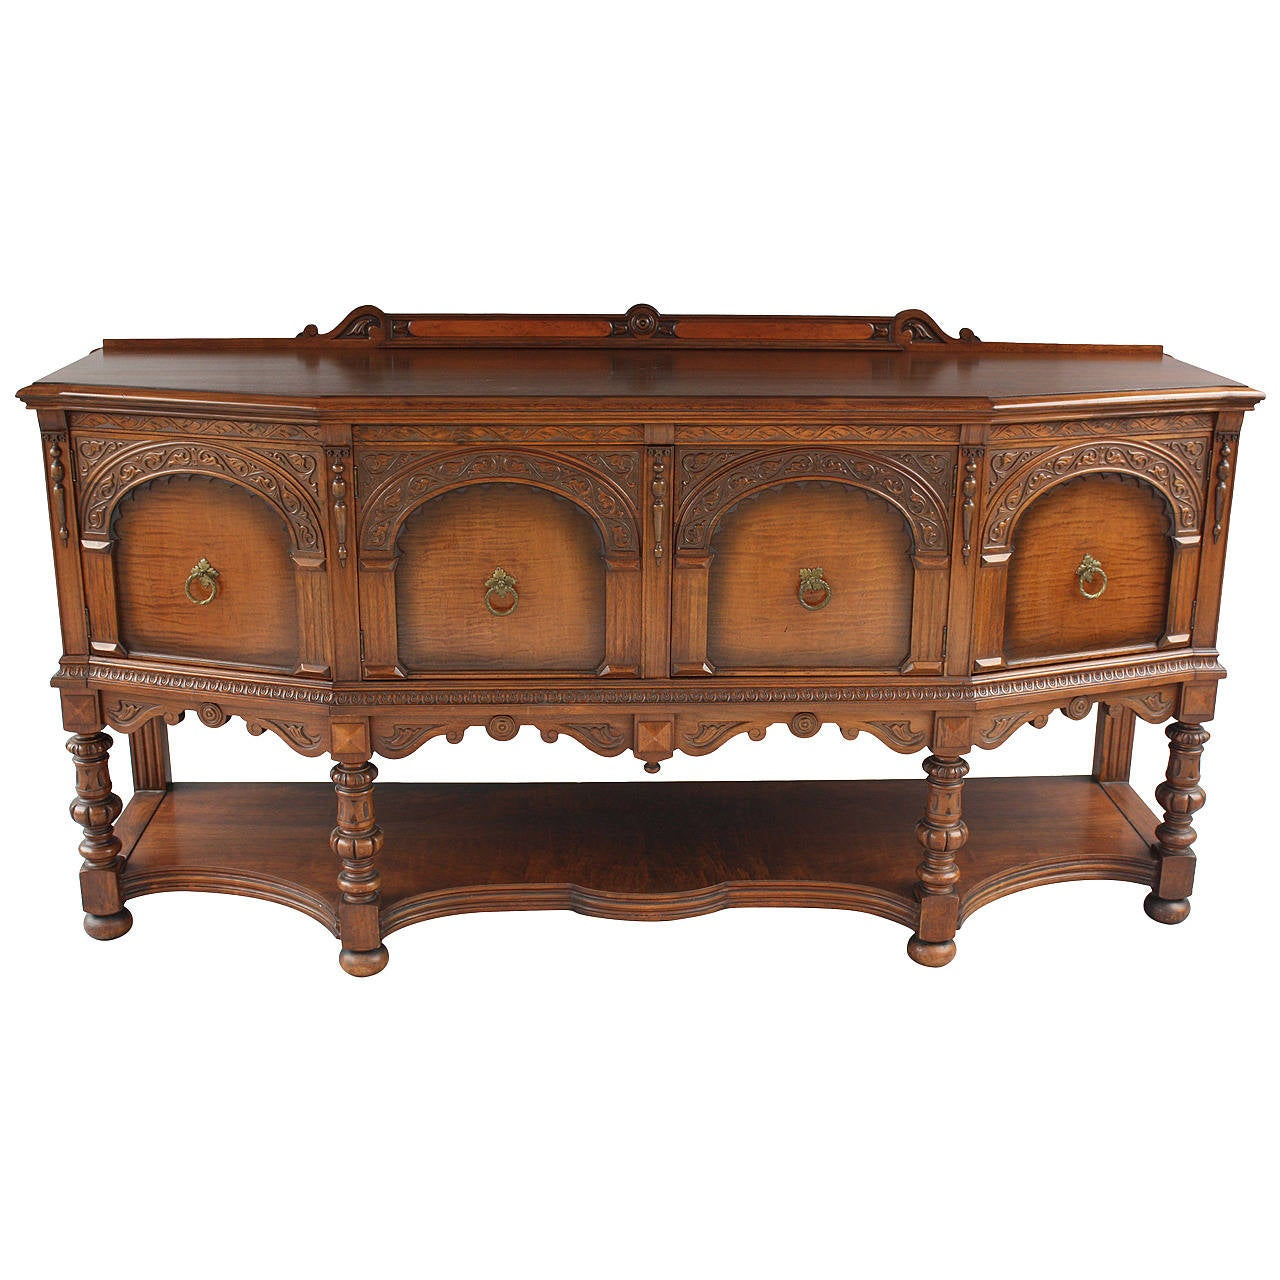 Classic Spanish Revival Sideboard at 1stdibs